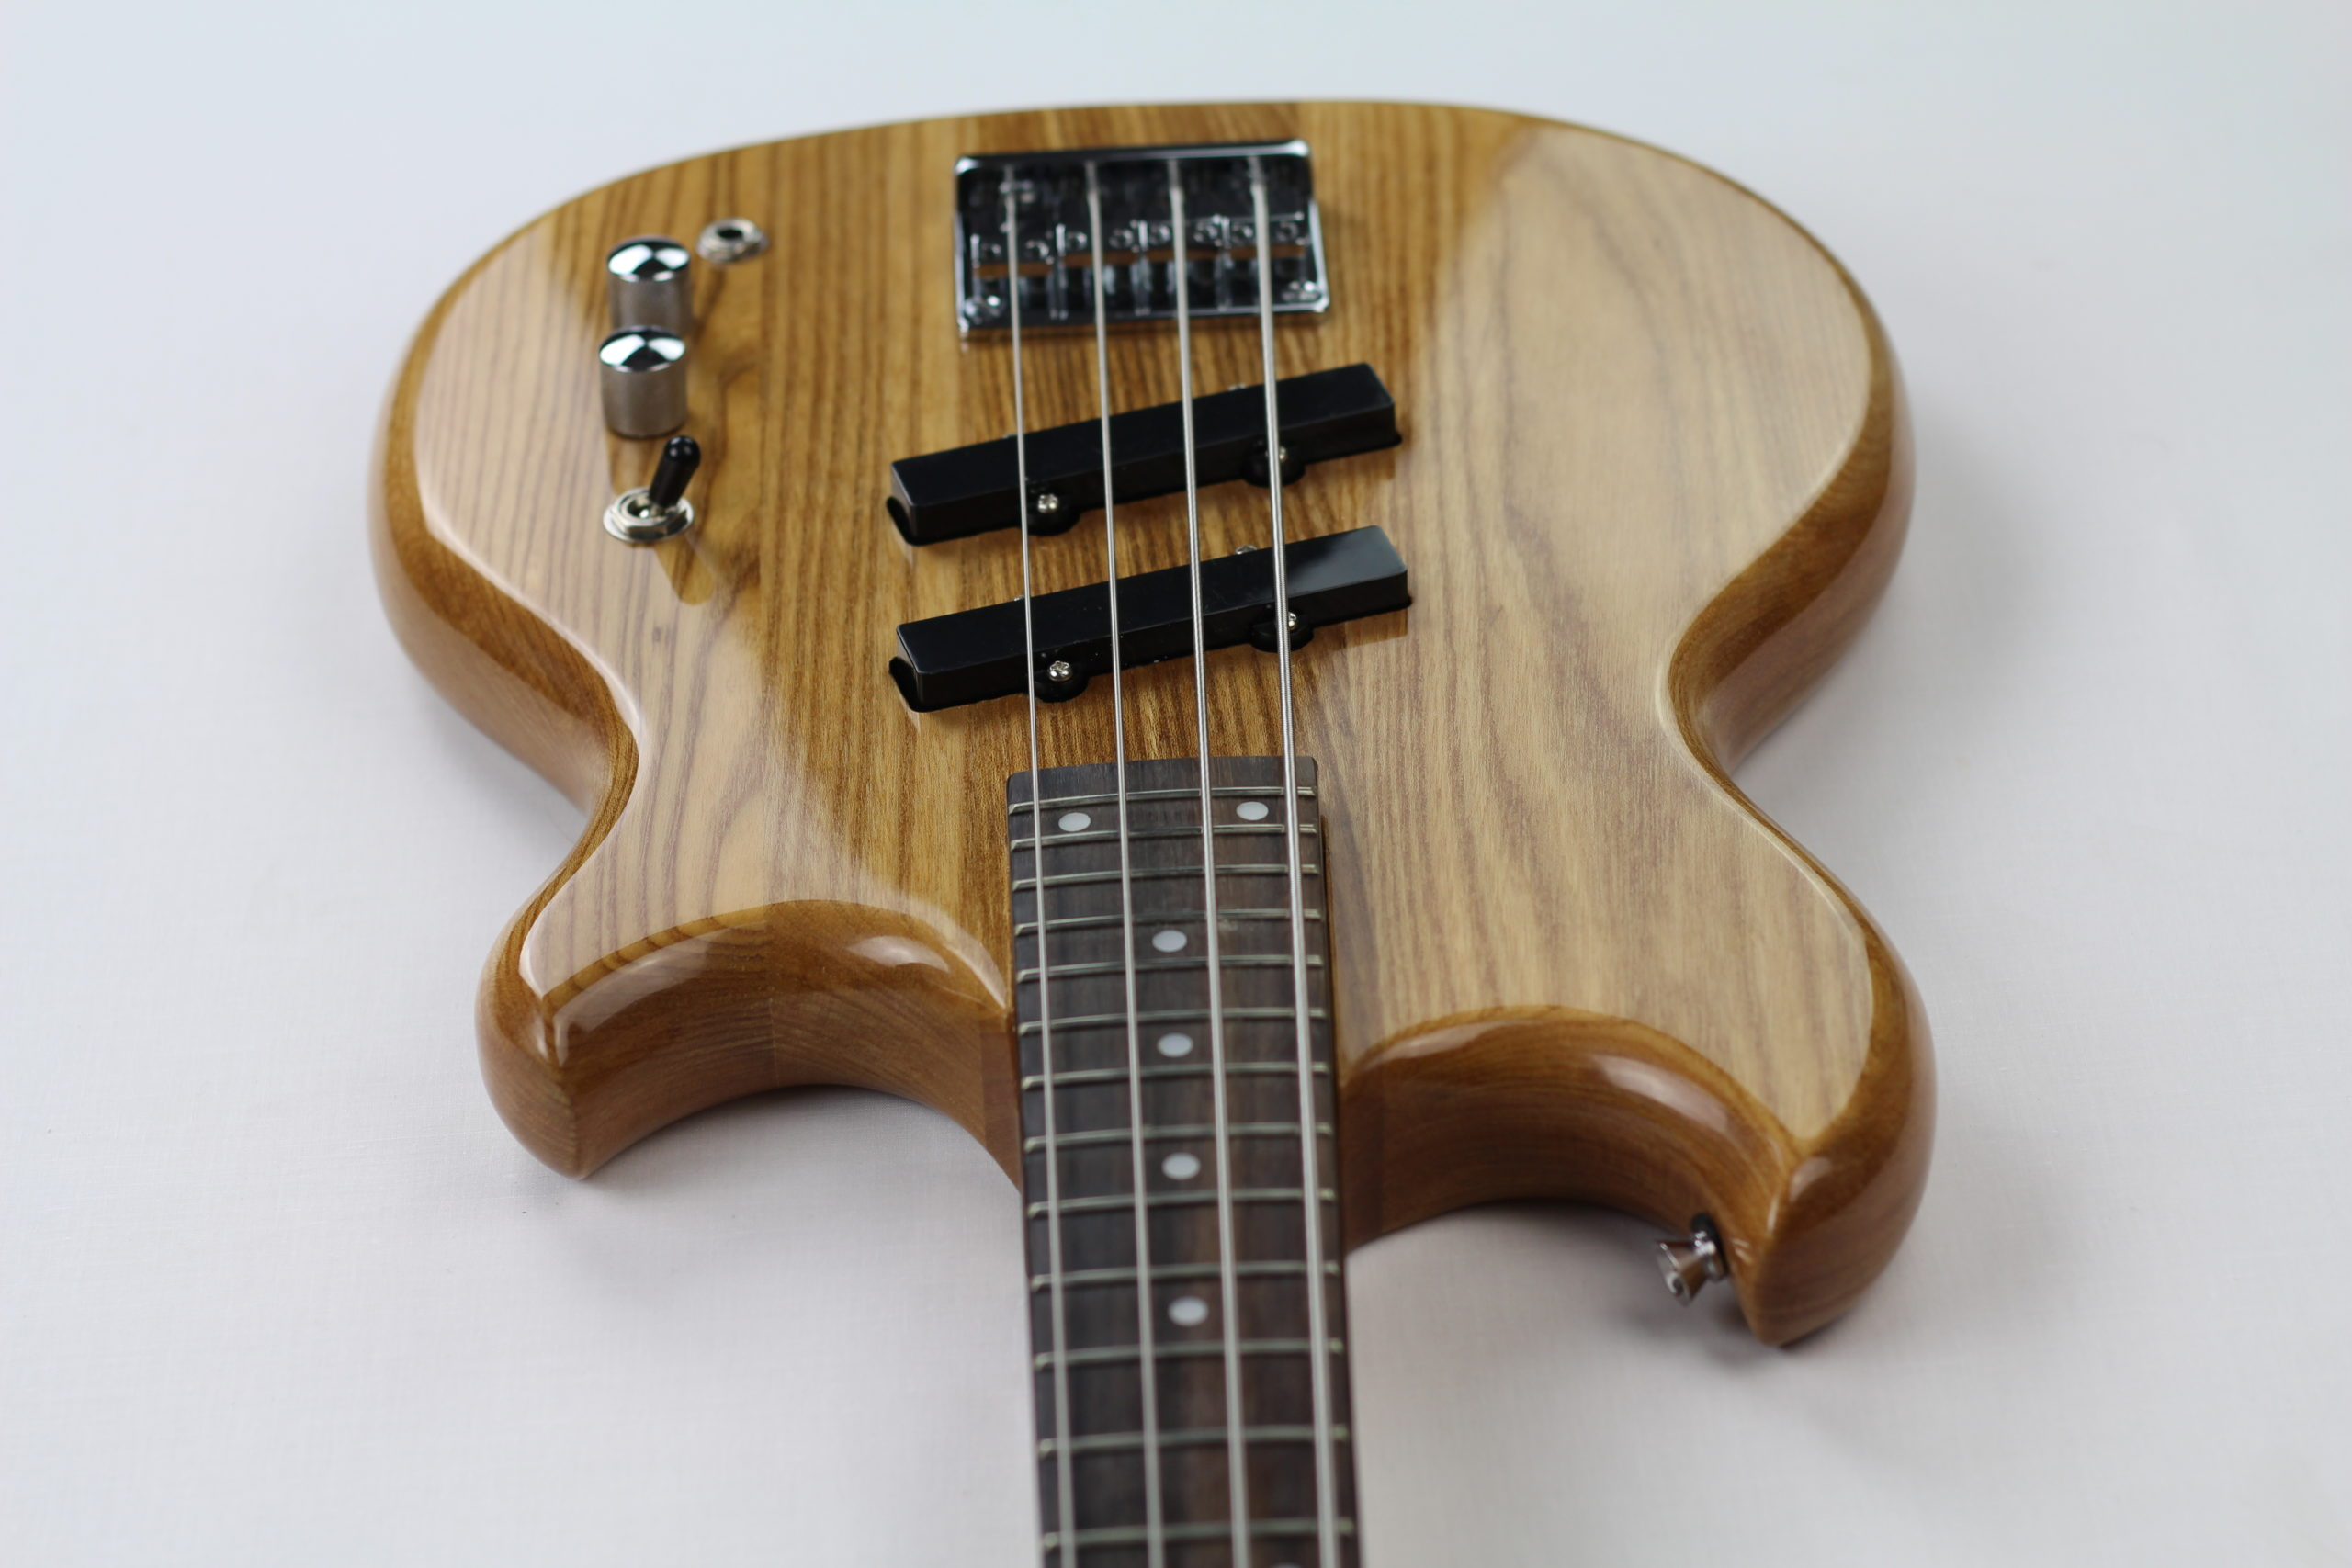 Chowny SWB-1 short scale bass above view